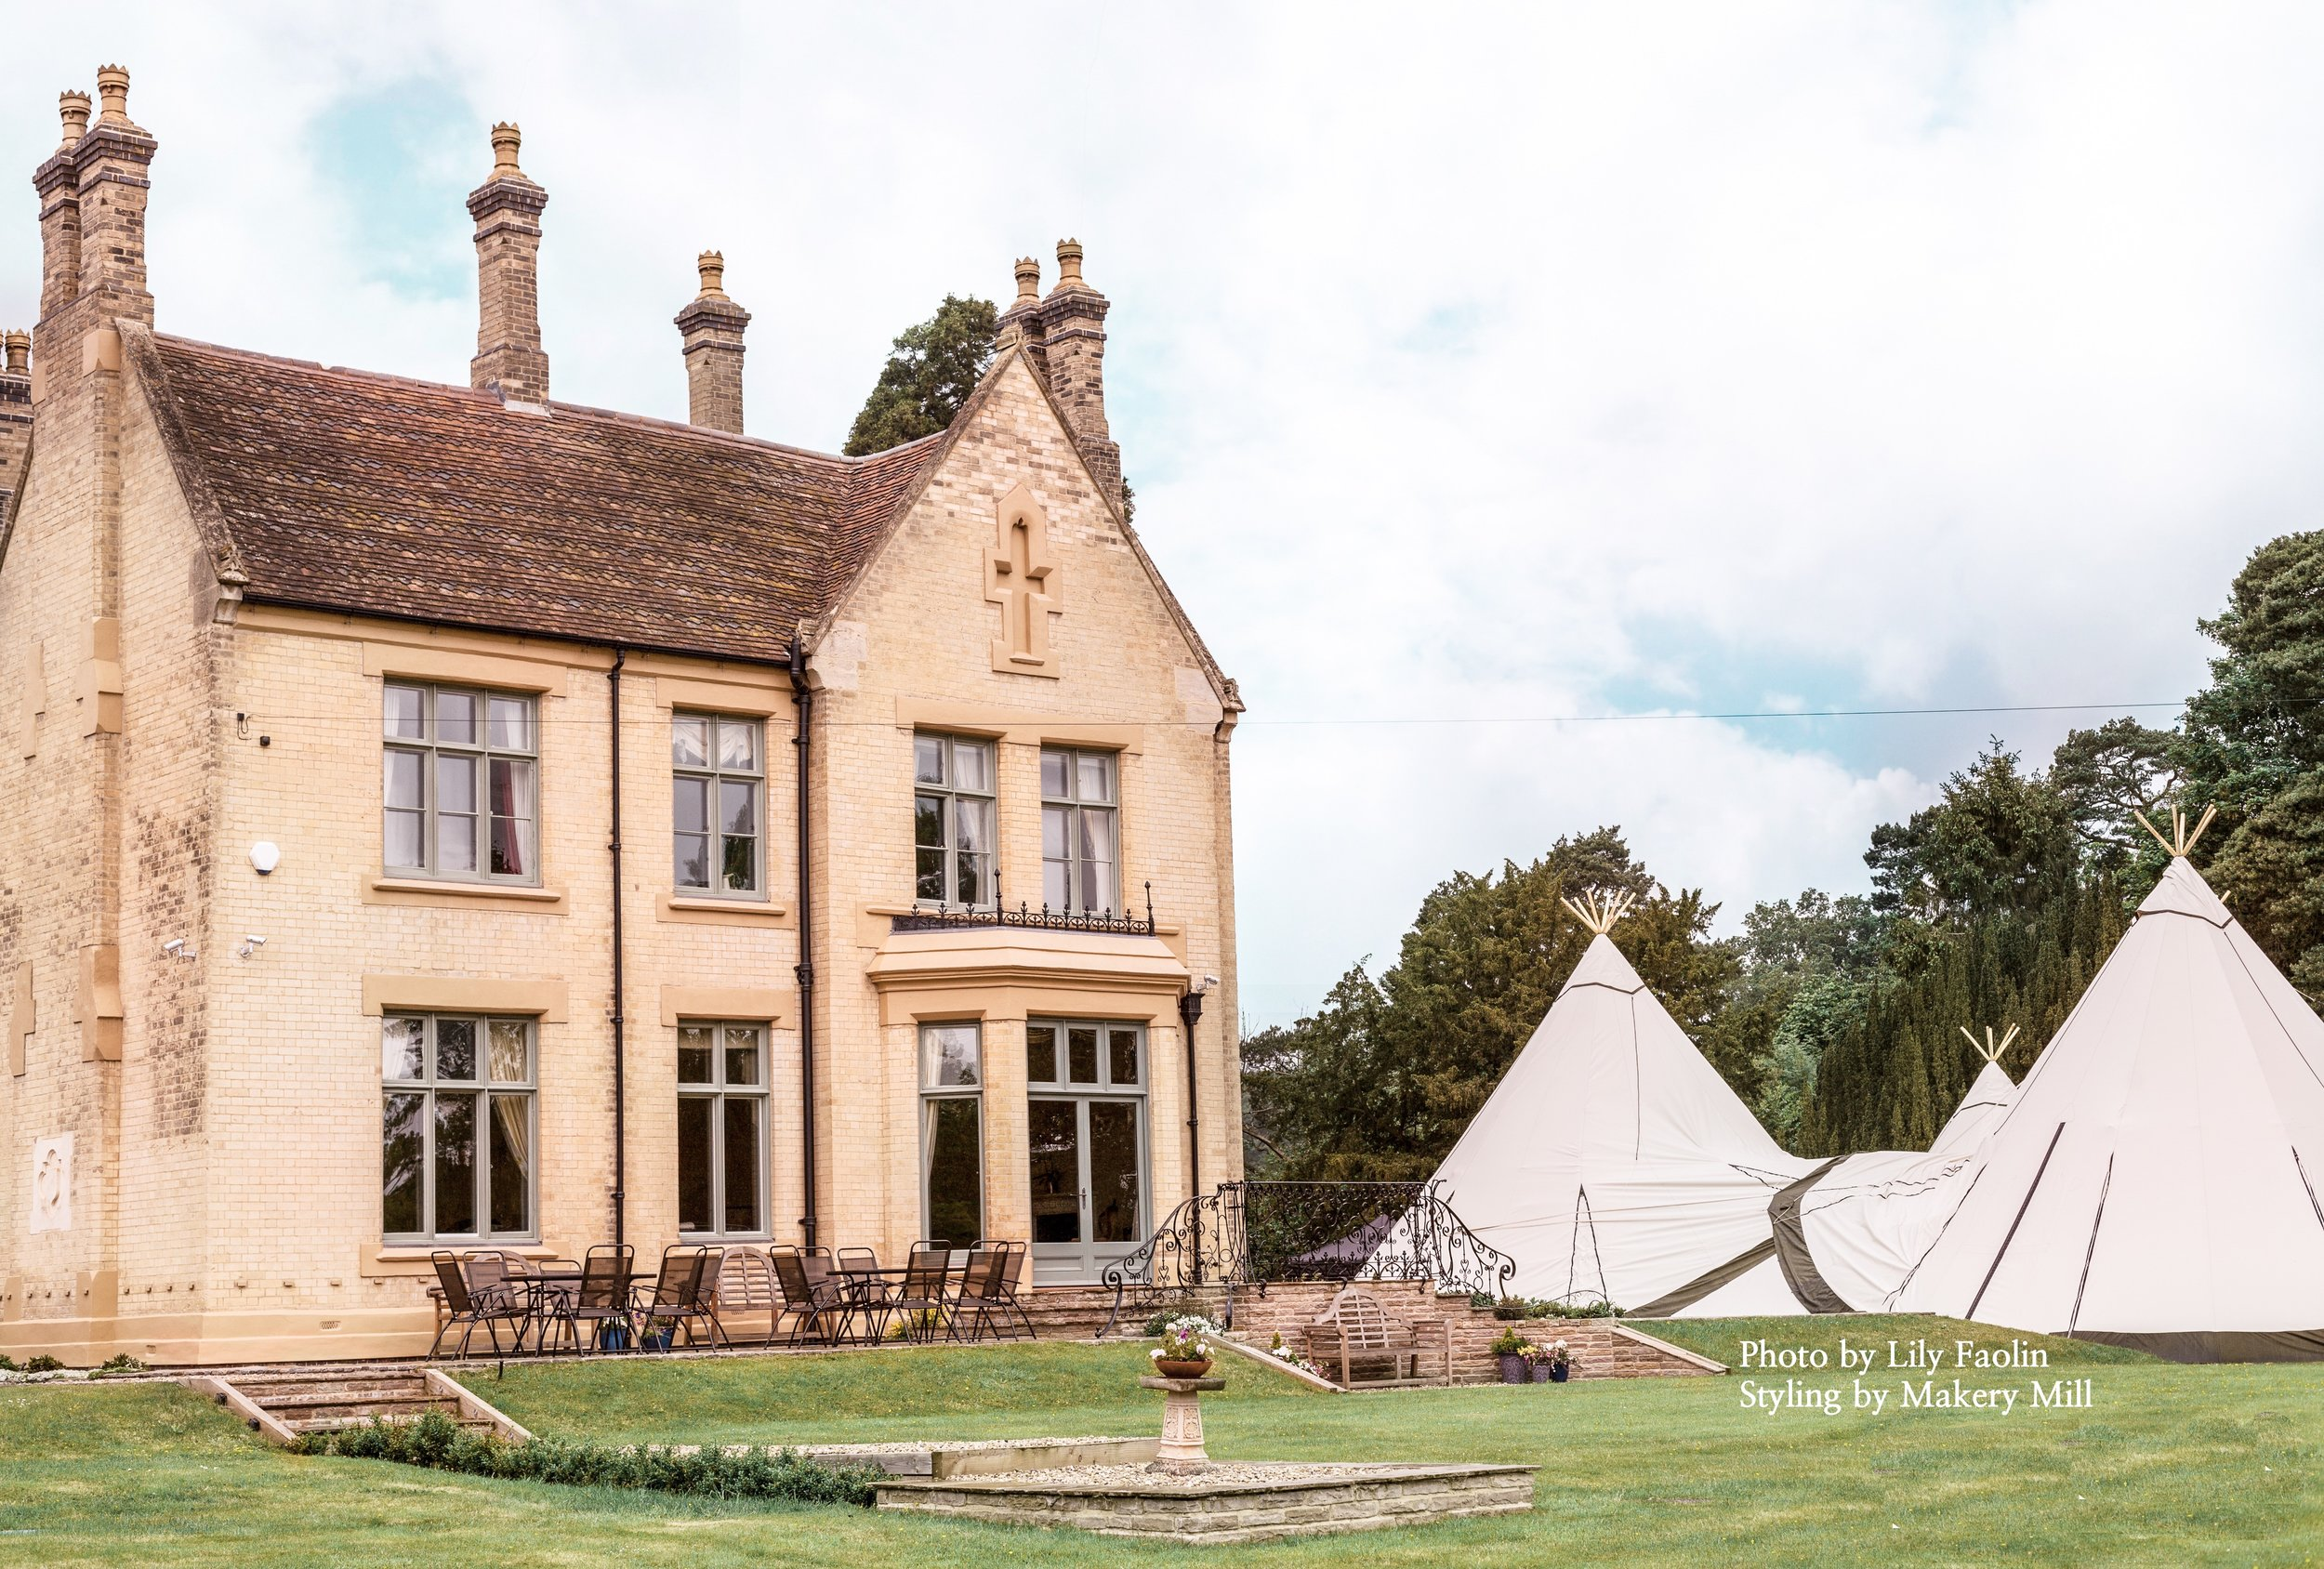 Gorgeous white wedding tipis